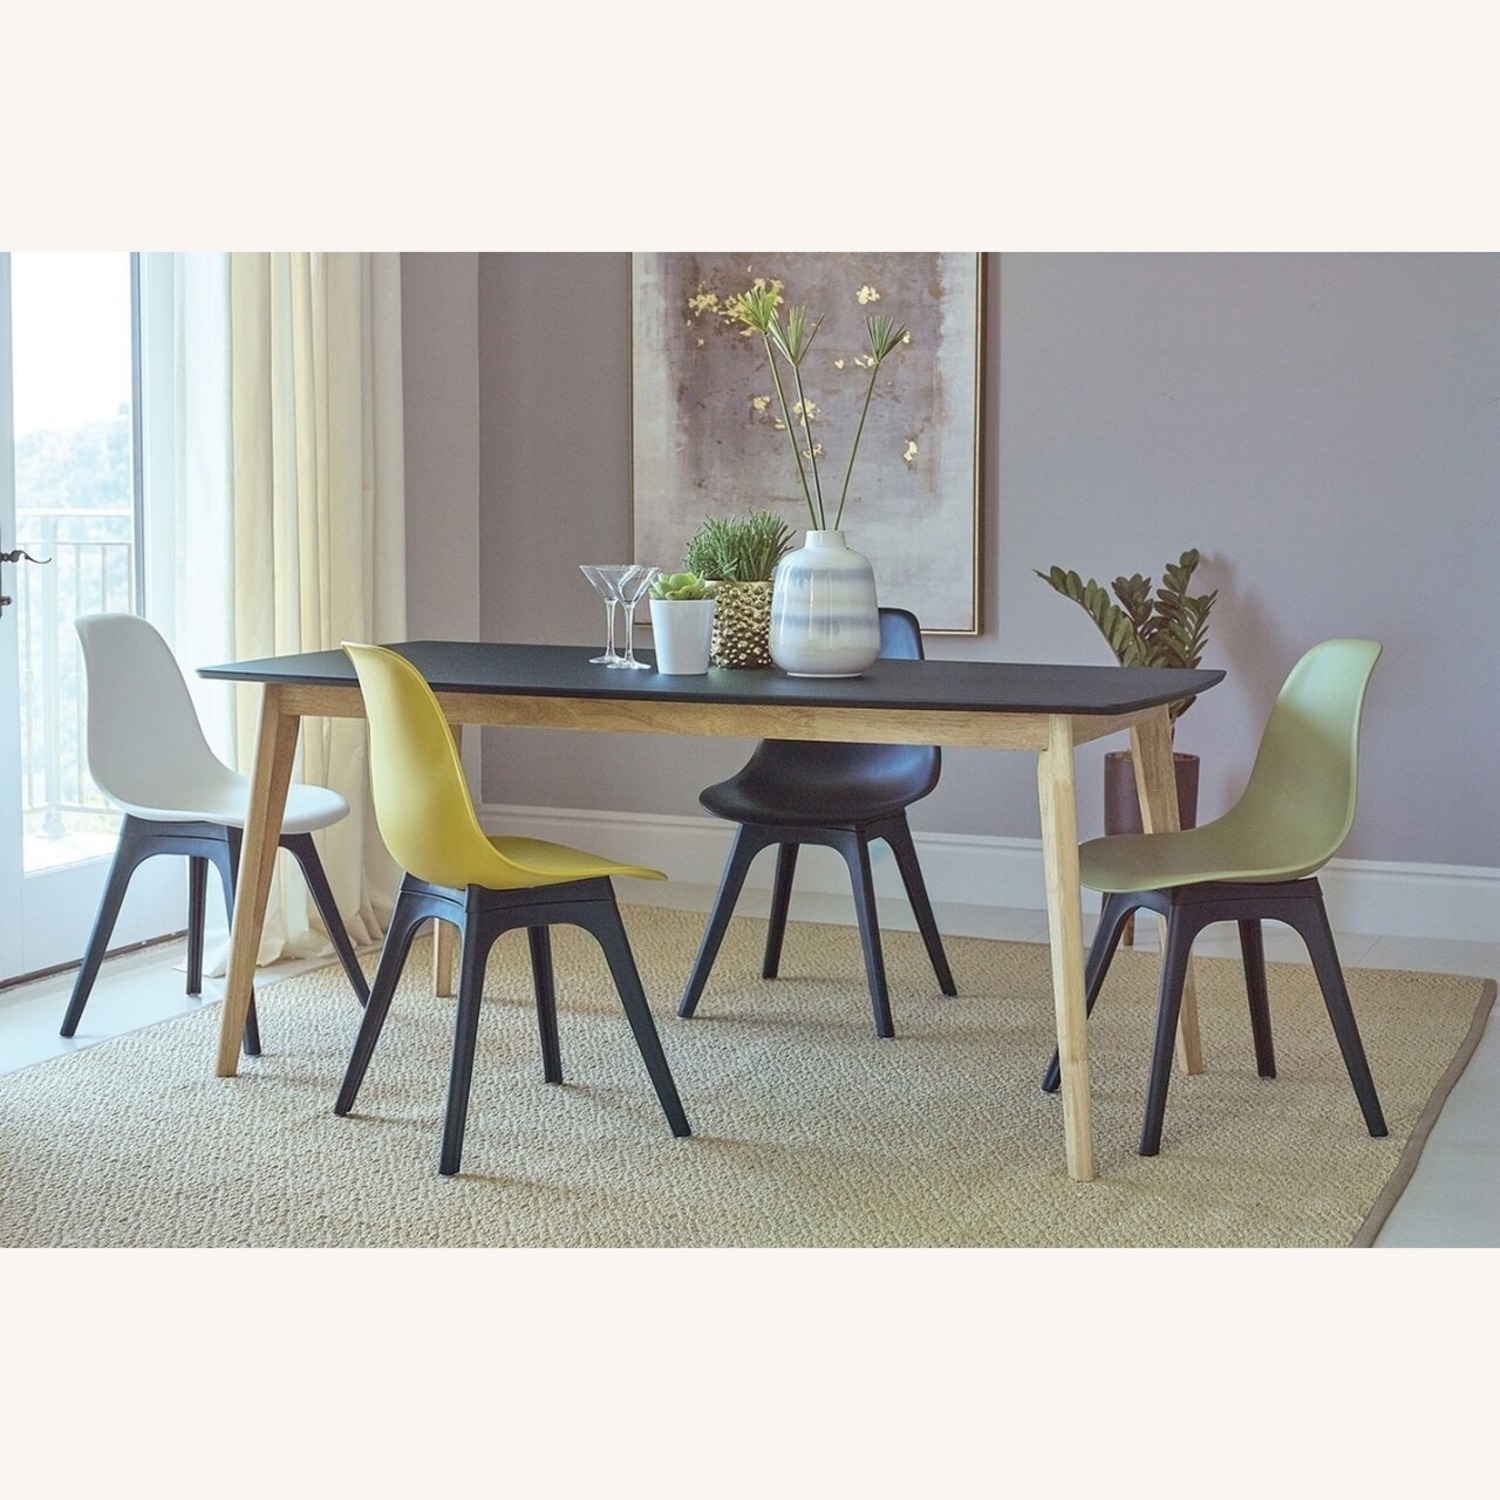 Dining Table In Matte Black And Natural Finish - image-2